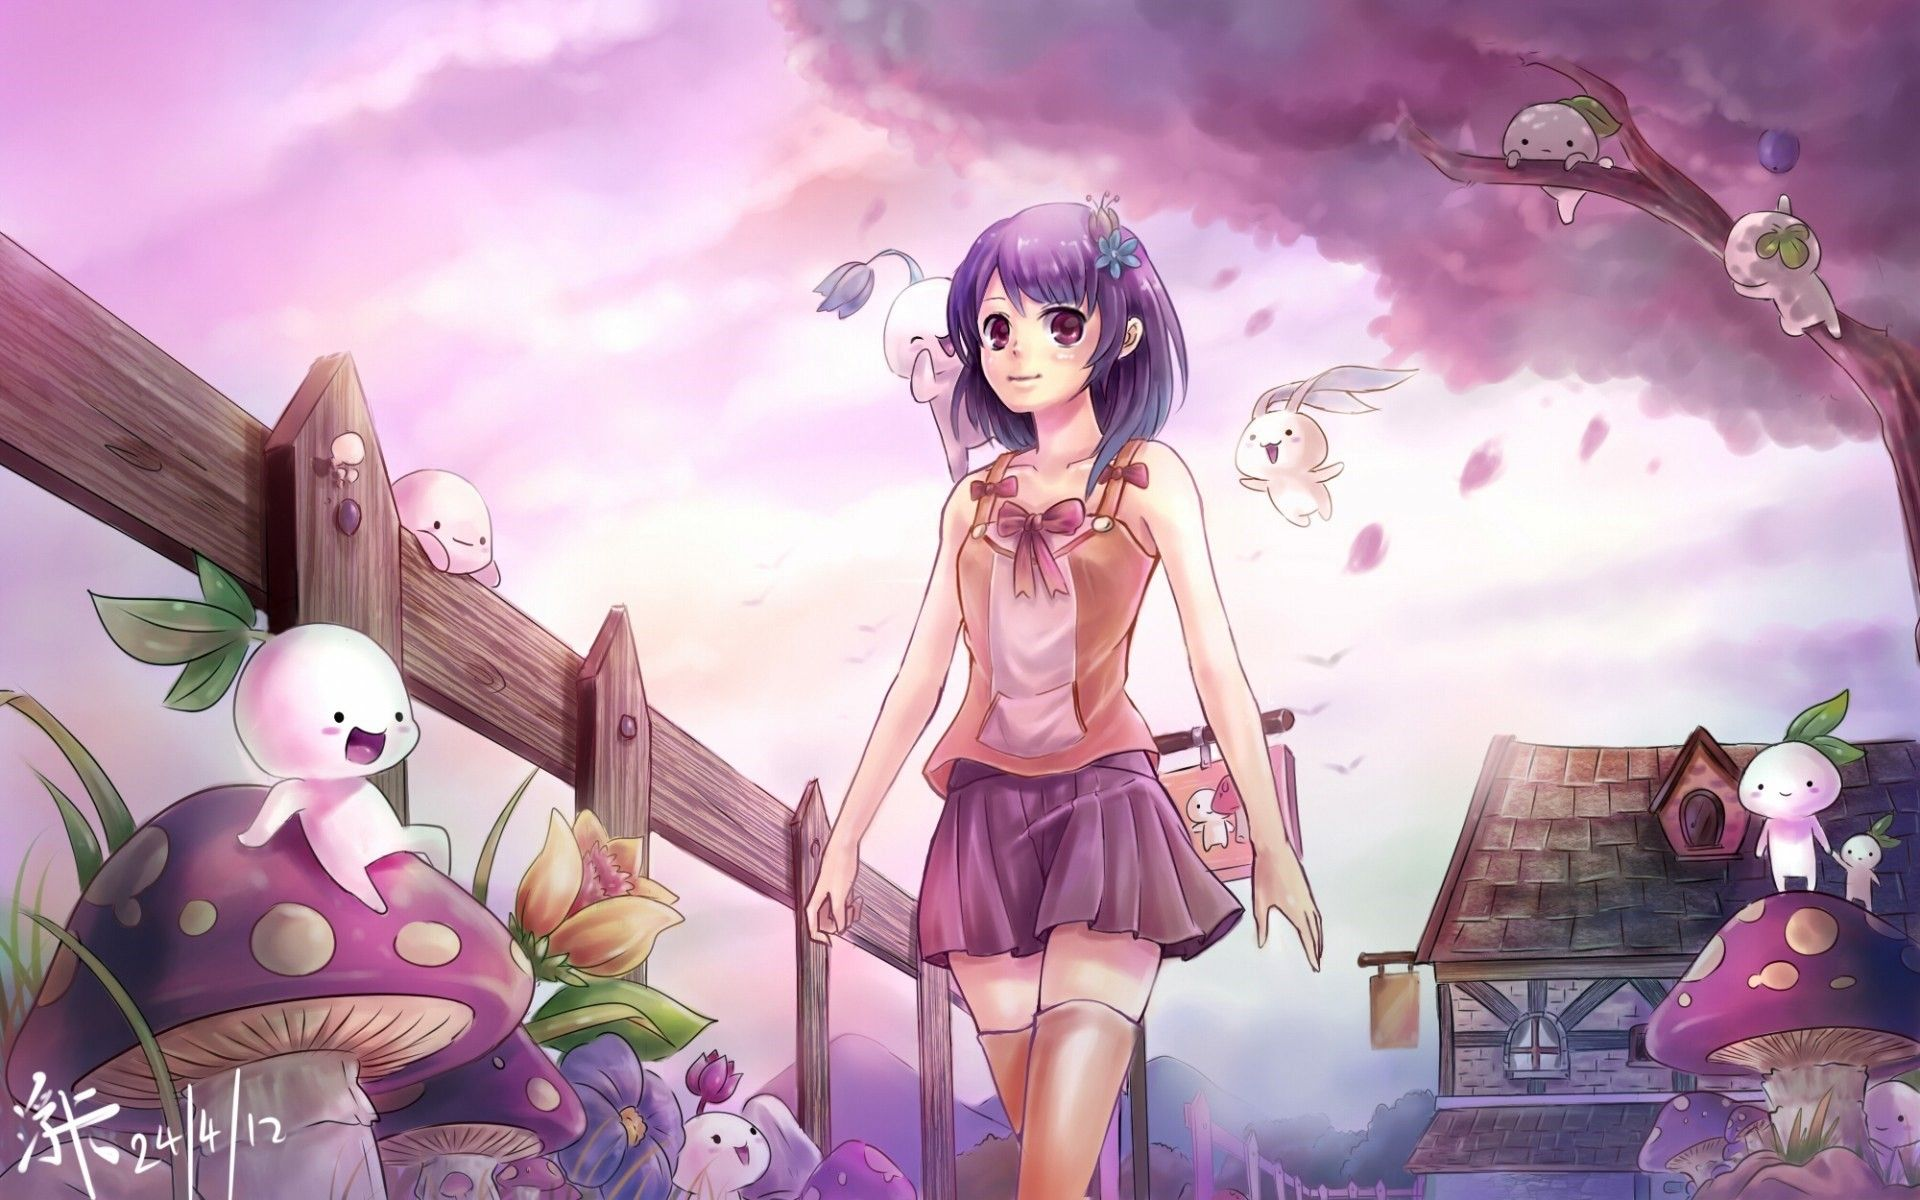 Pin On Hd Anime Wallpaper Anime love wallpapers wallpaper cave